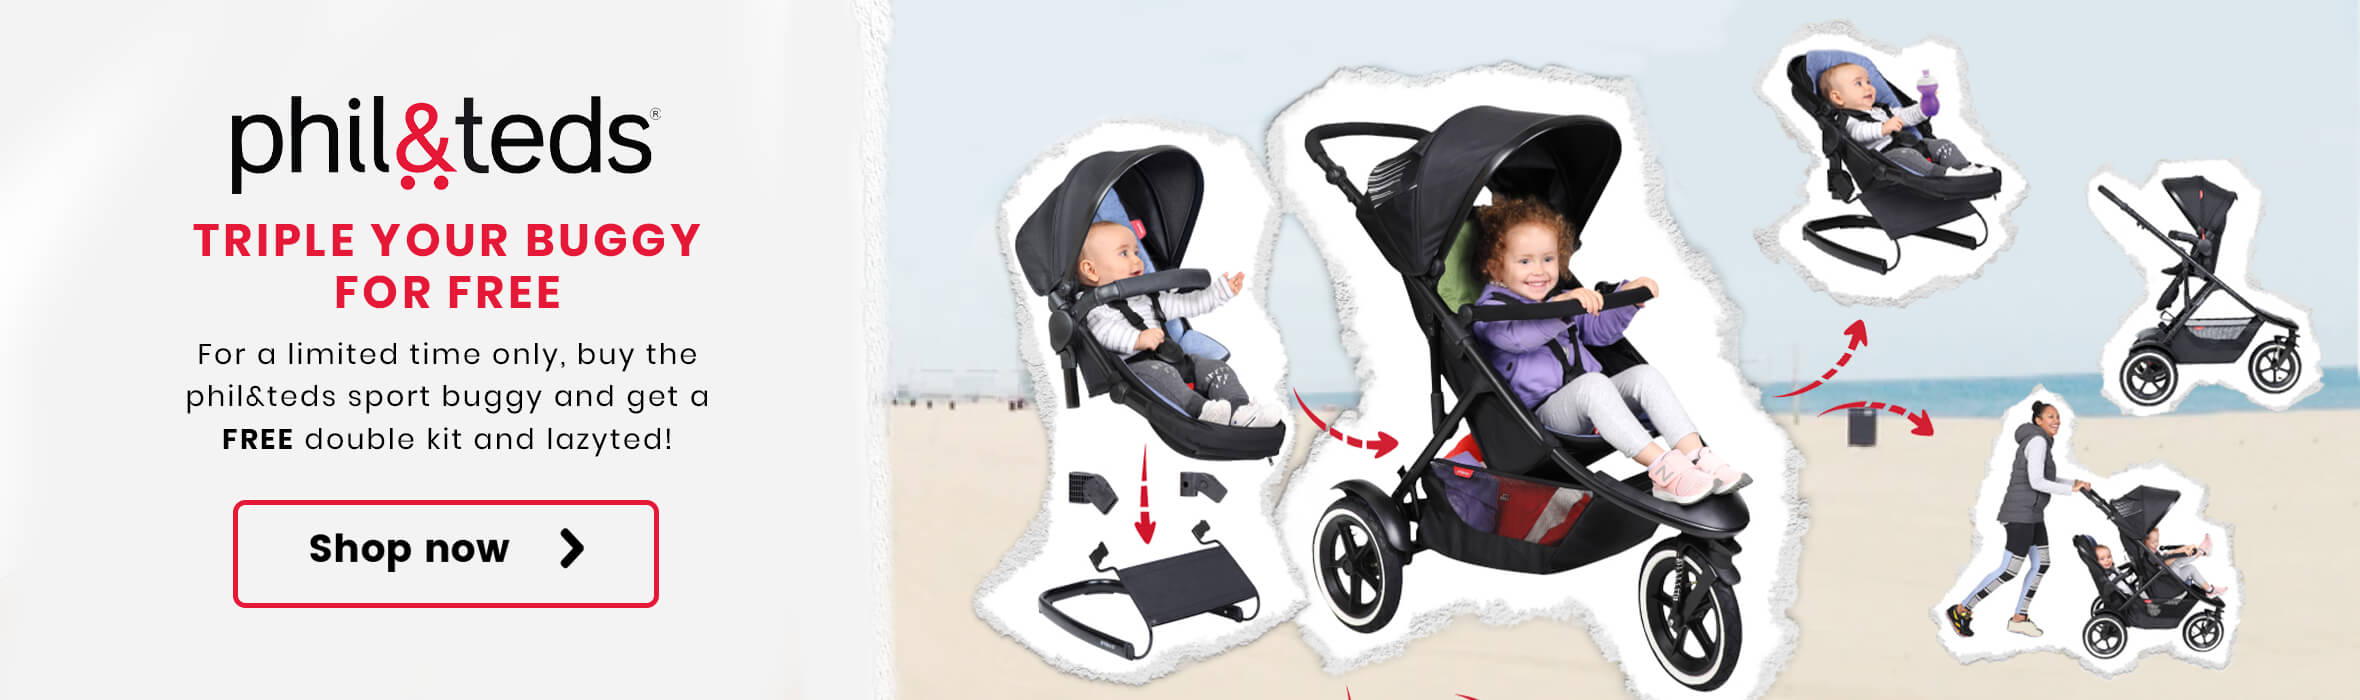 Triple your Phil & Ted's Buggy for Free!